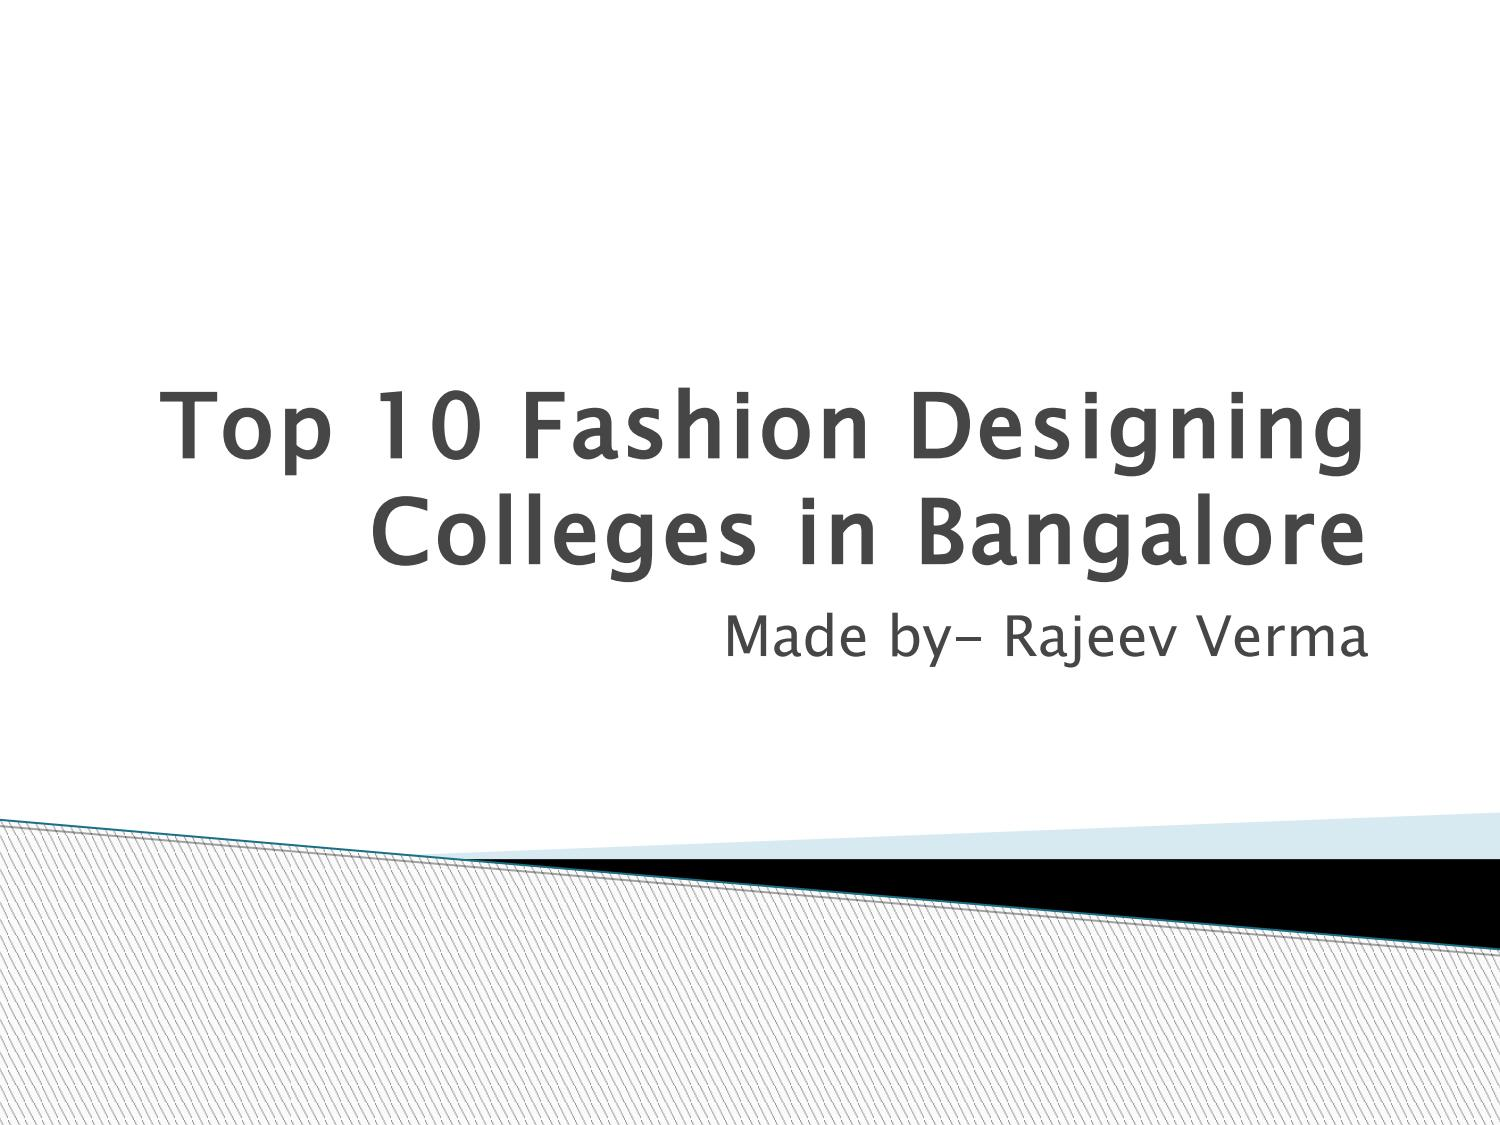 Top 10 Fashion Designing Colleges In Bangalore By Rajeev Verma Issuu